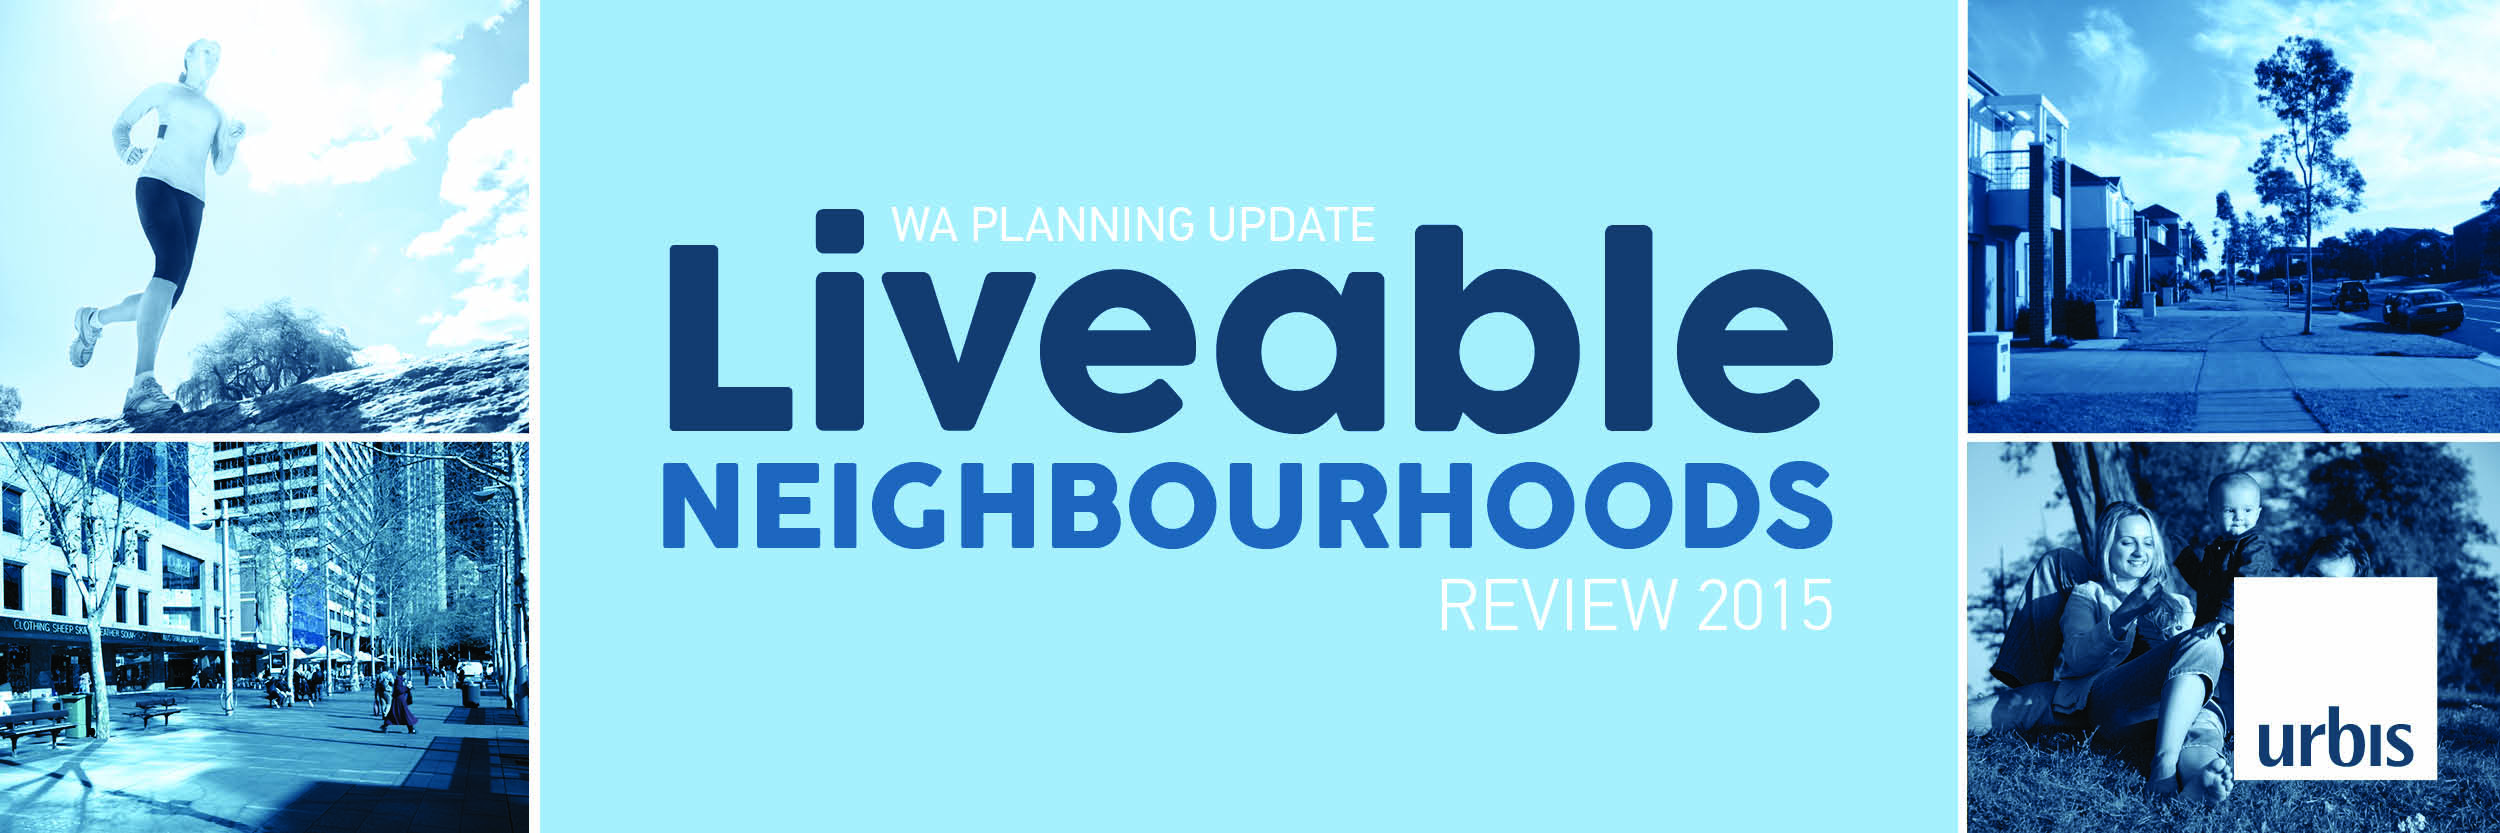 Liveable Neighbourhoods Review 2015 Banner